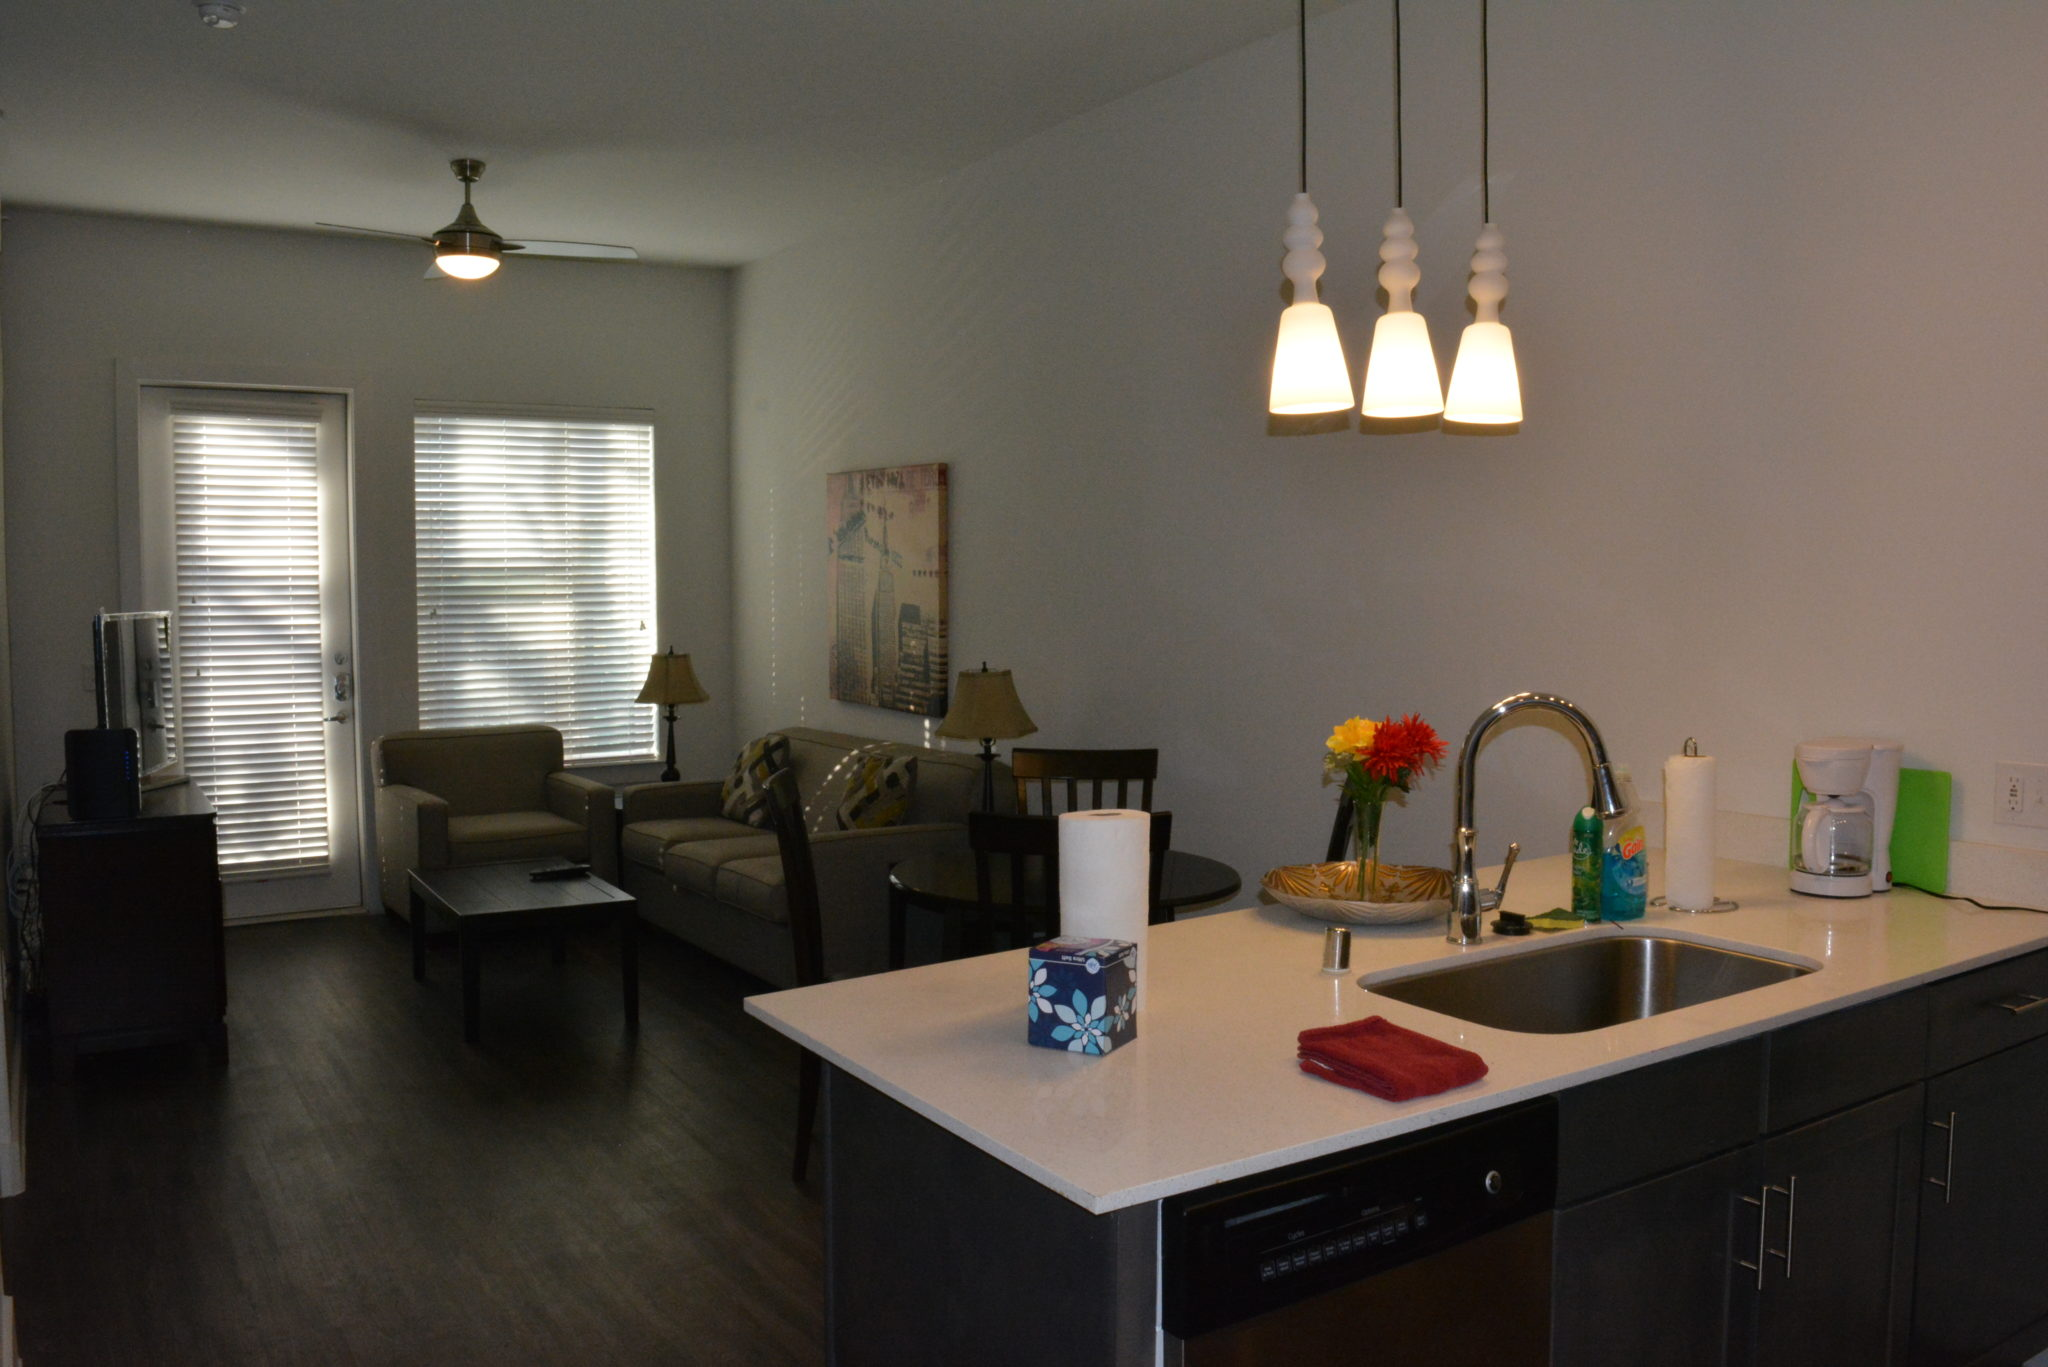 Furnished Apartments Rental Corporate Housing Plano Frisco Dallas